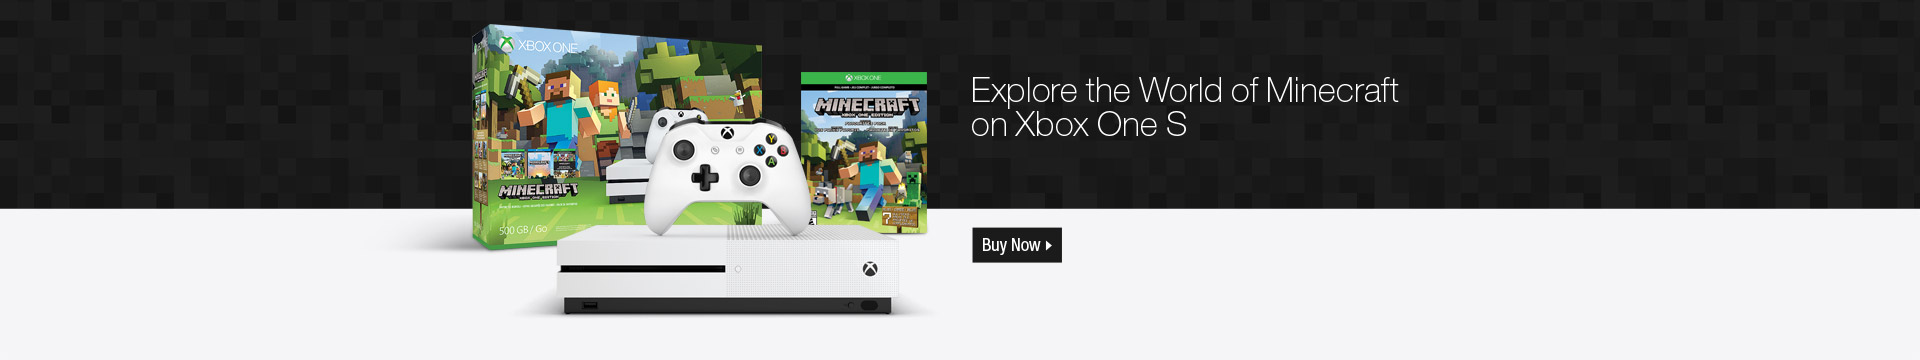 Explore the World of Minecraft on Xbox One S